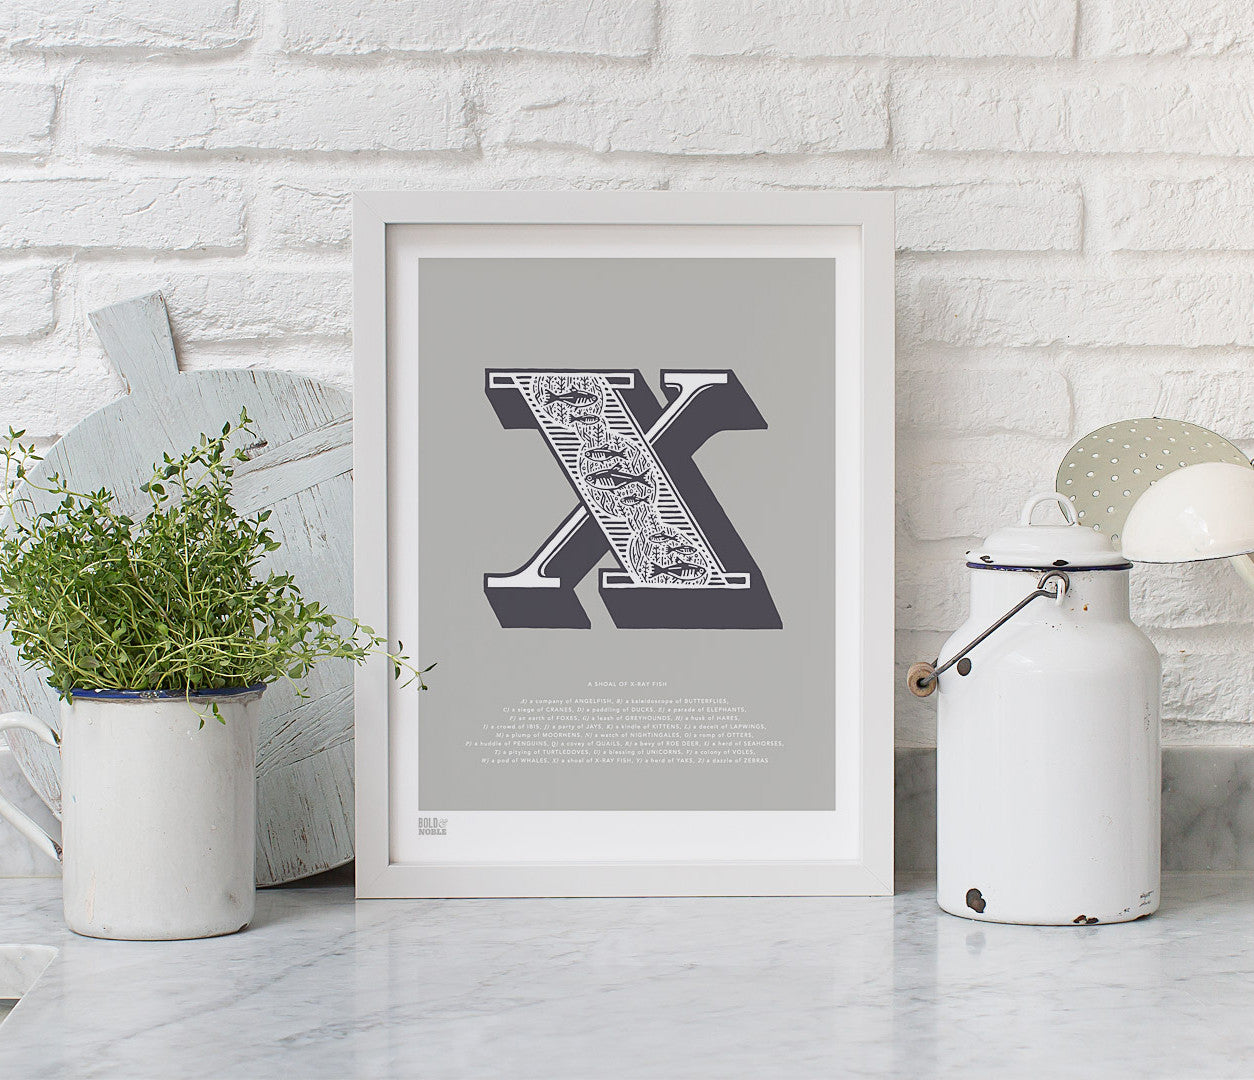 Wall Art Ideas: Economical Screen Prints, Illustrated Letter W printed in putty grey